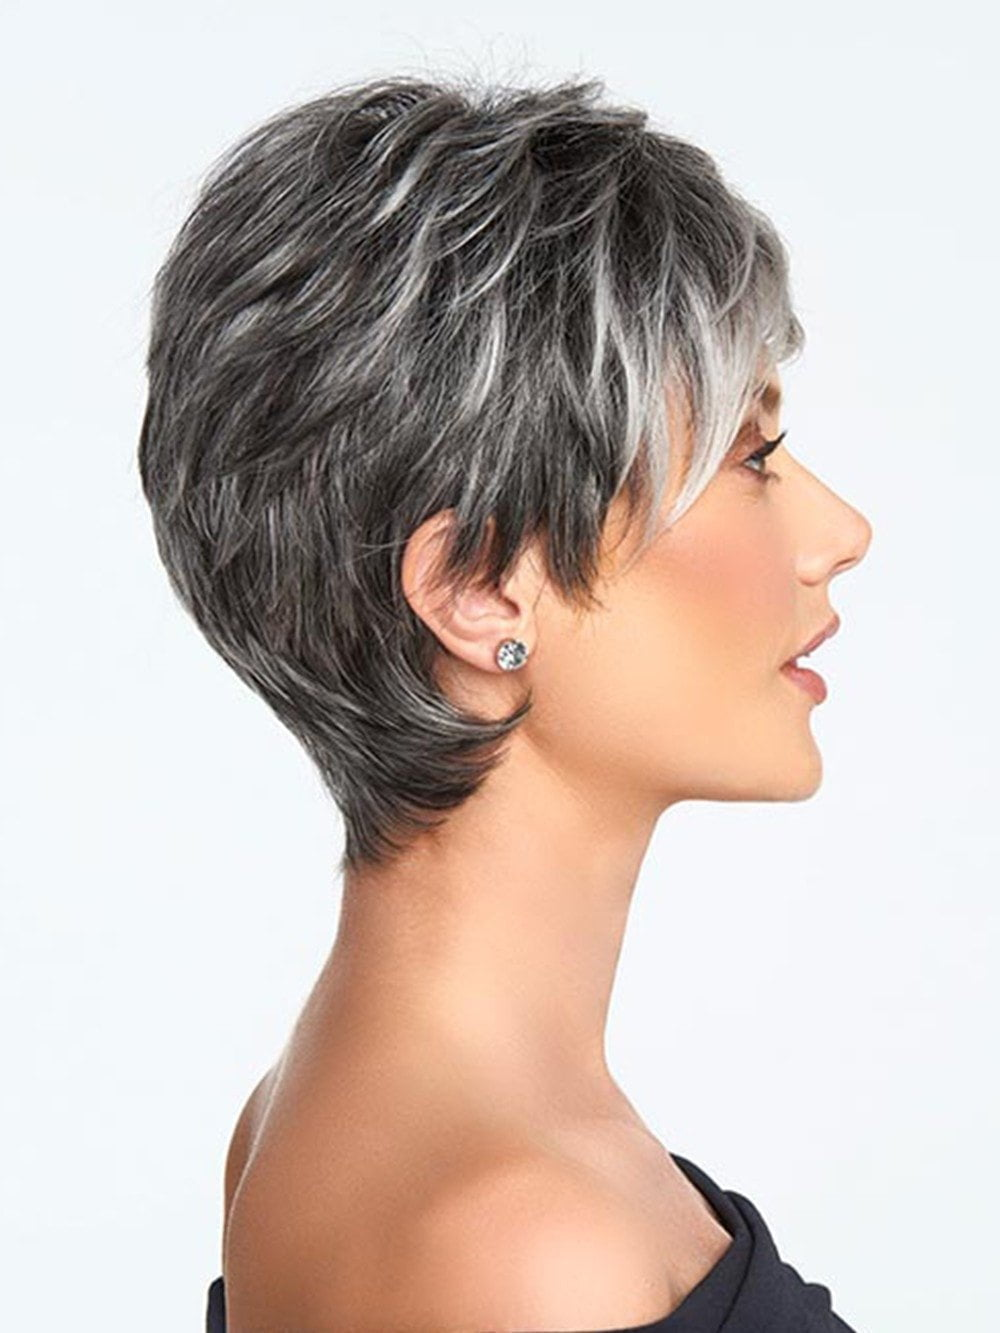 The slightly angled fringe can be worn onto the face or swept away while the razor cut nape creates a soft clean look in the back